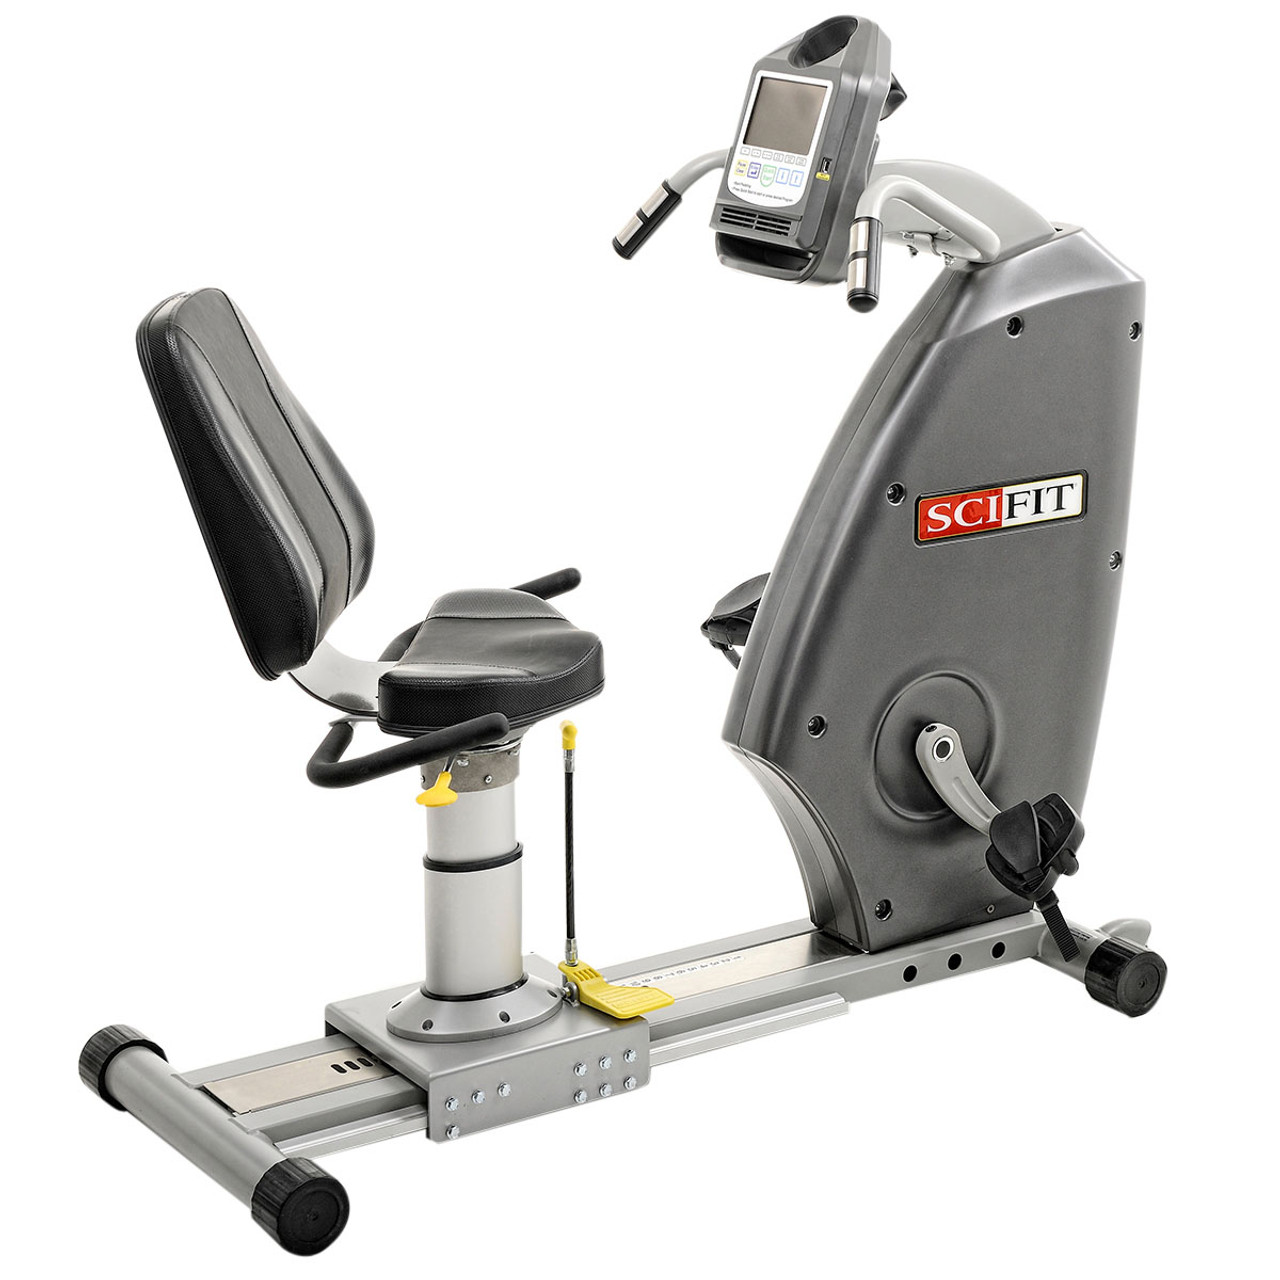 SciFit Recumbent Bike - Forward Only - Step Through - Bariatric Seat